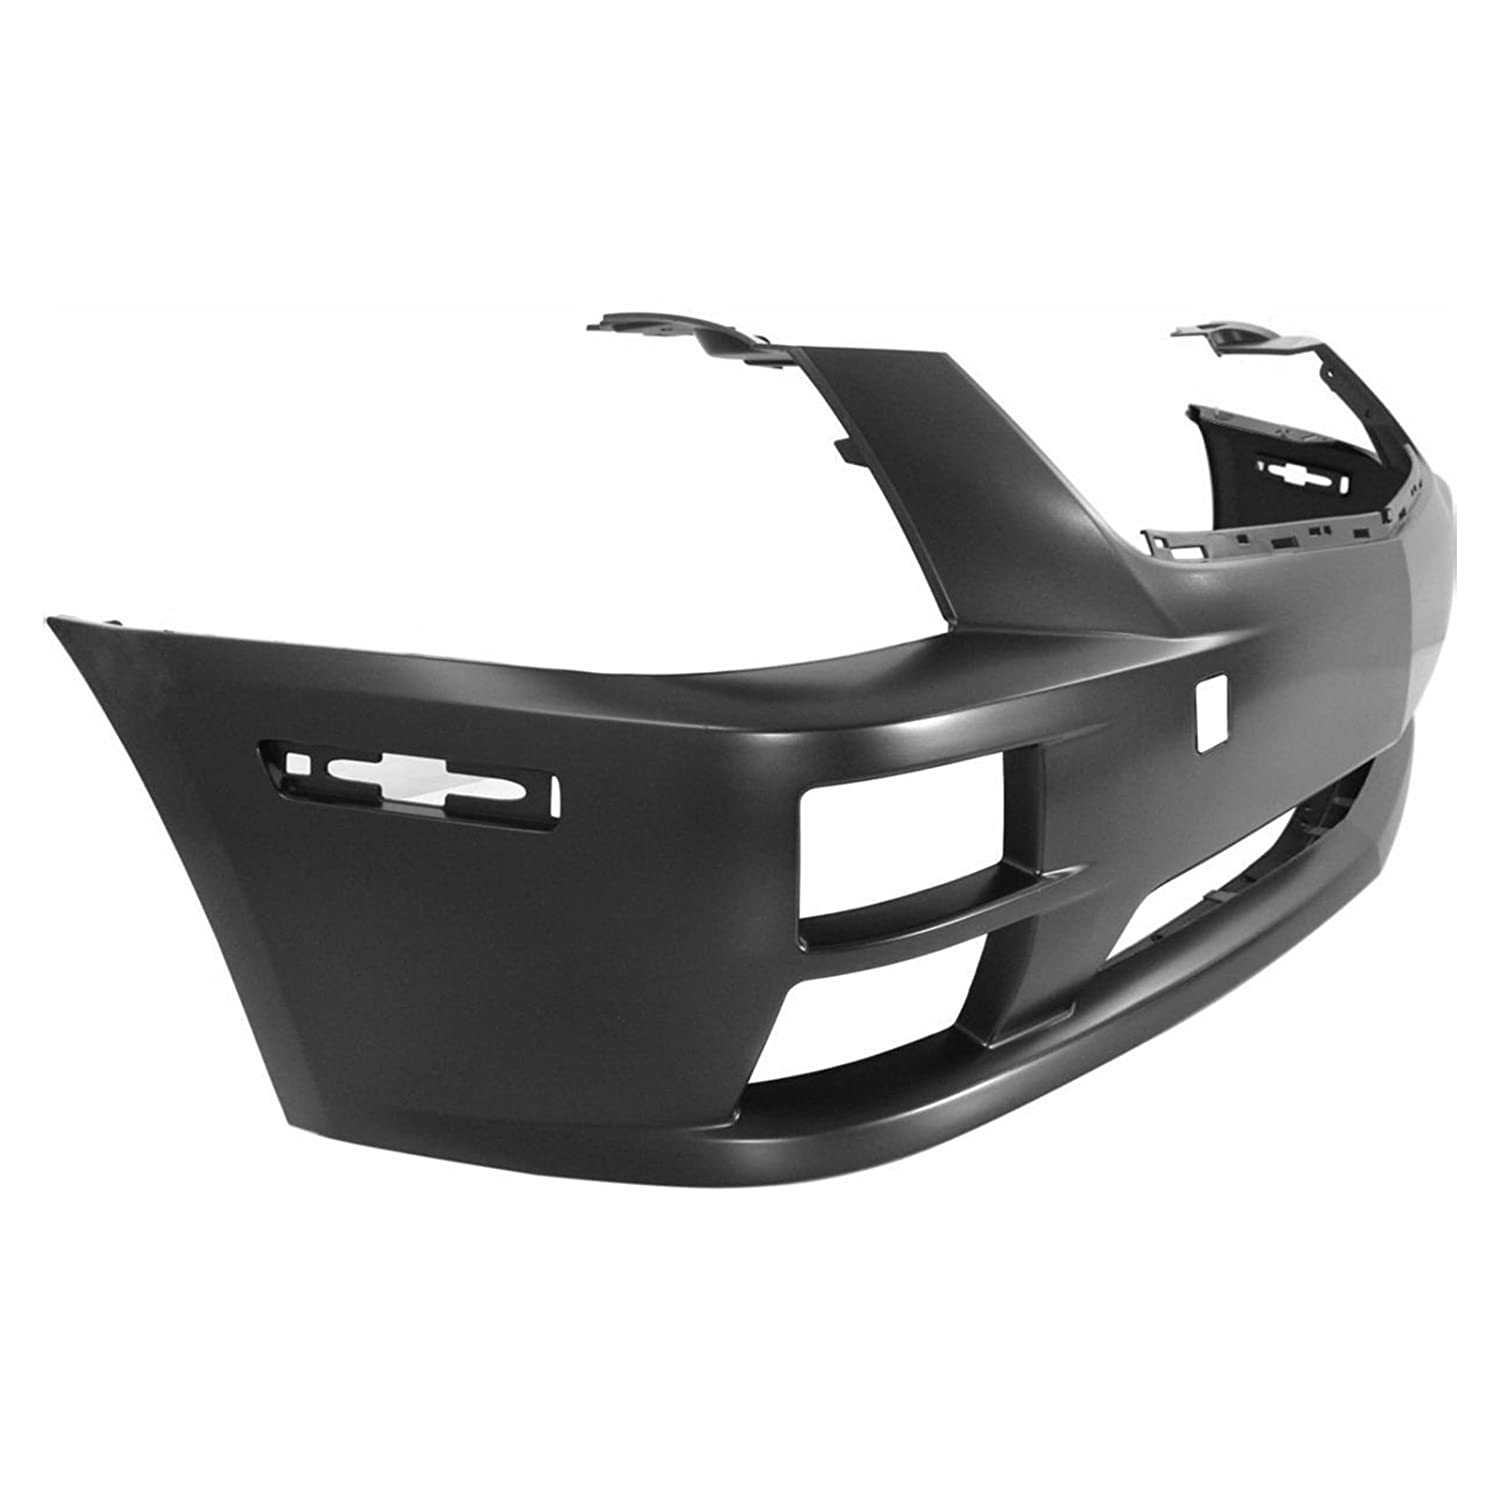 GM1000756 Primered Front Bumper Cover Fascia Replacement for 2005 2006 2007 Cadillac STS 05 06 07 MBI AUTO